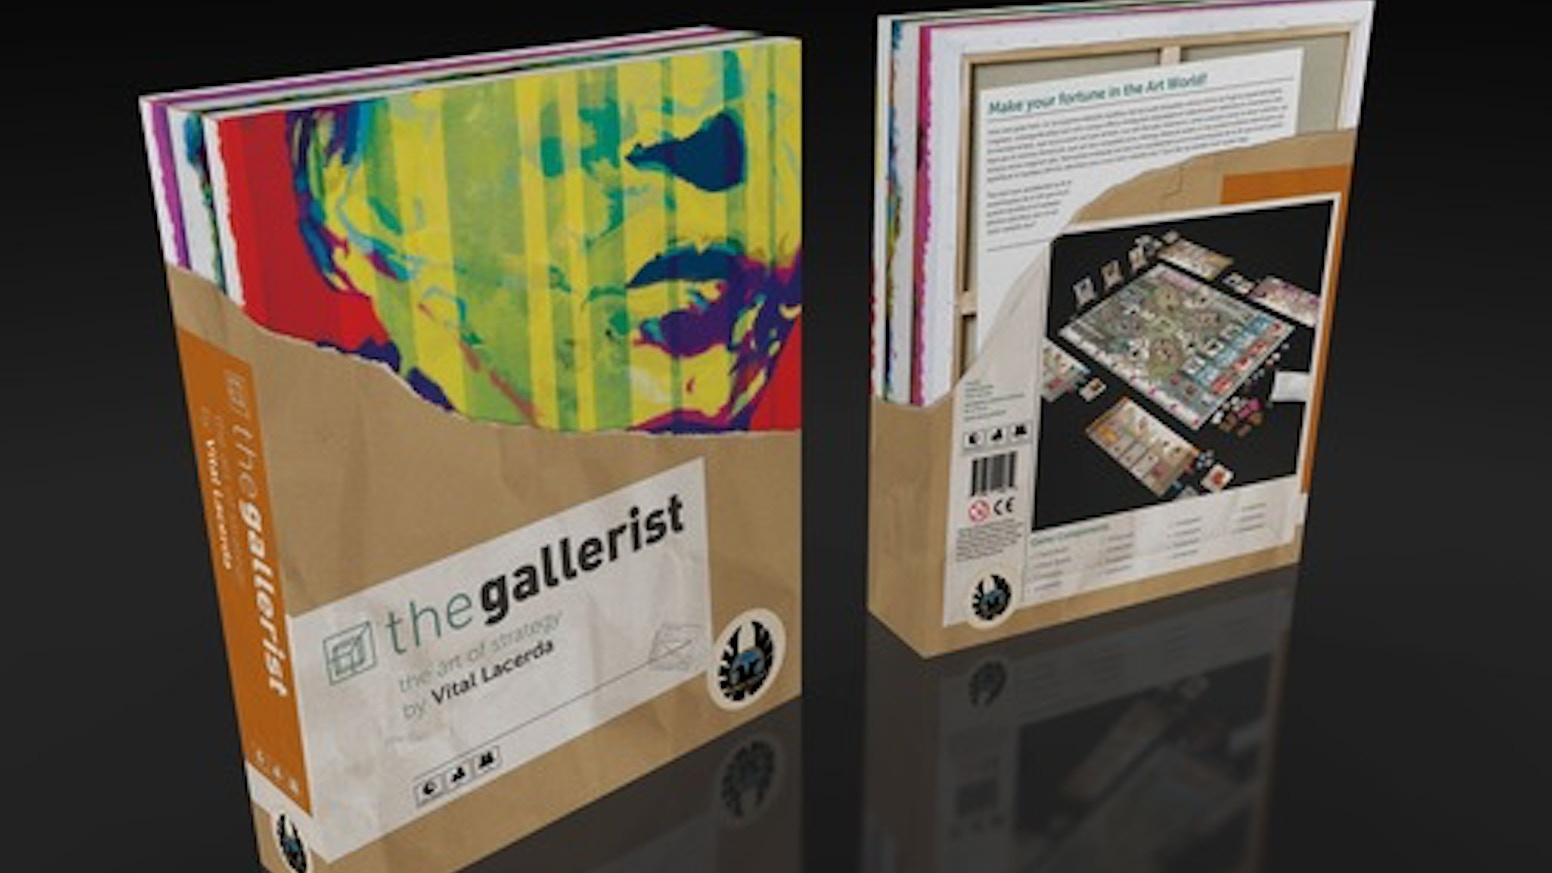 A new occupation, the Gallerist, combines elements of an art dealer, museum curator, and artists' manager. You just landed the job!